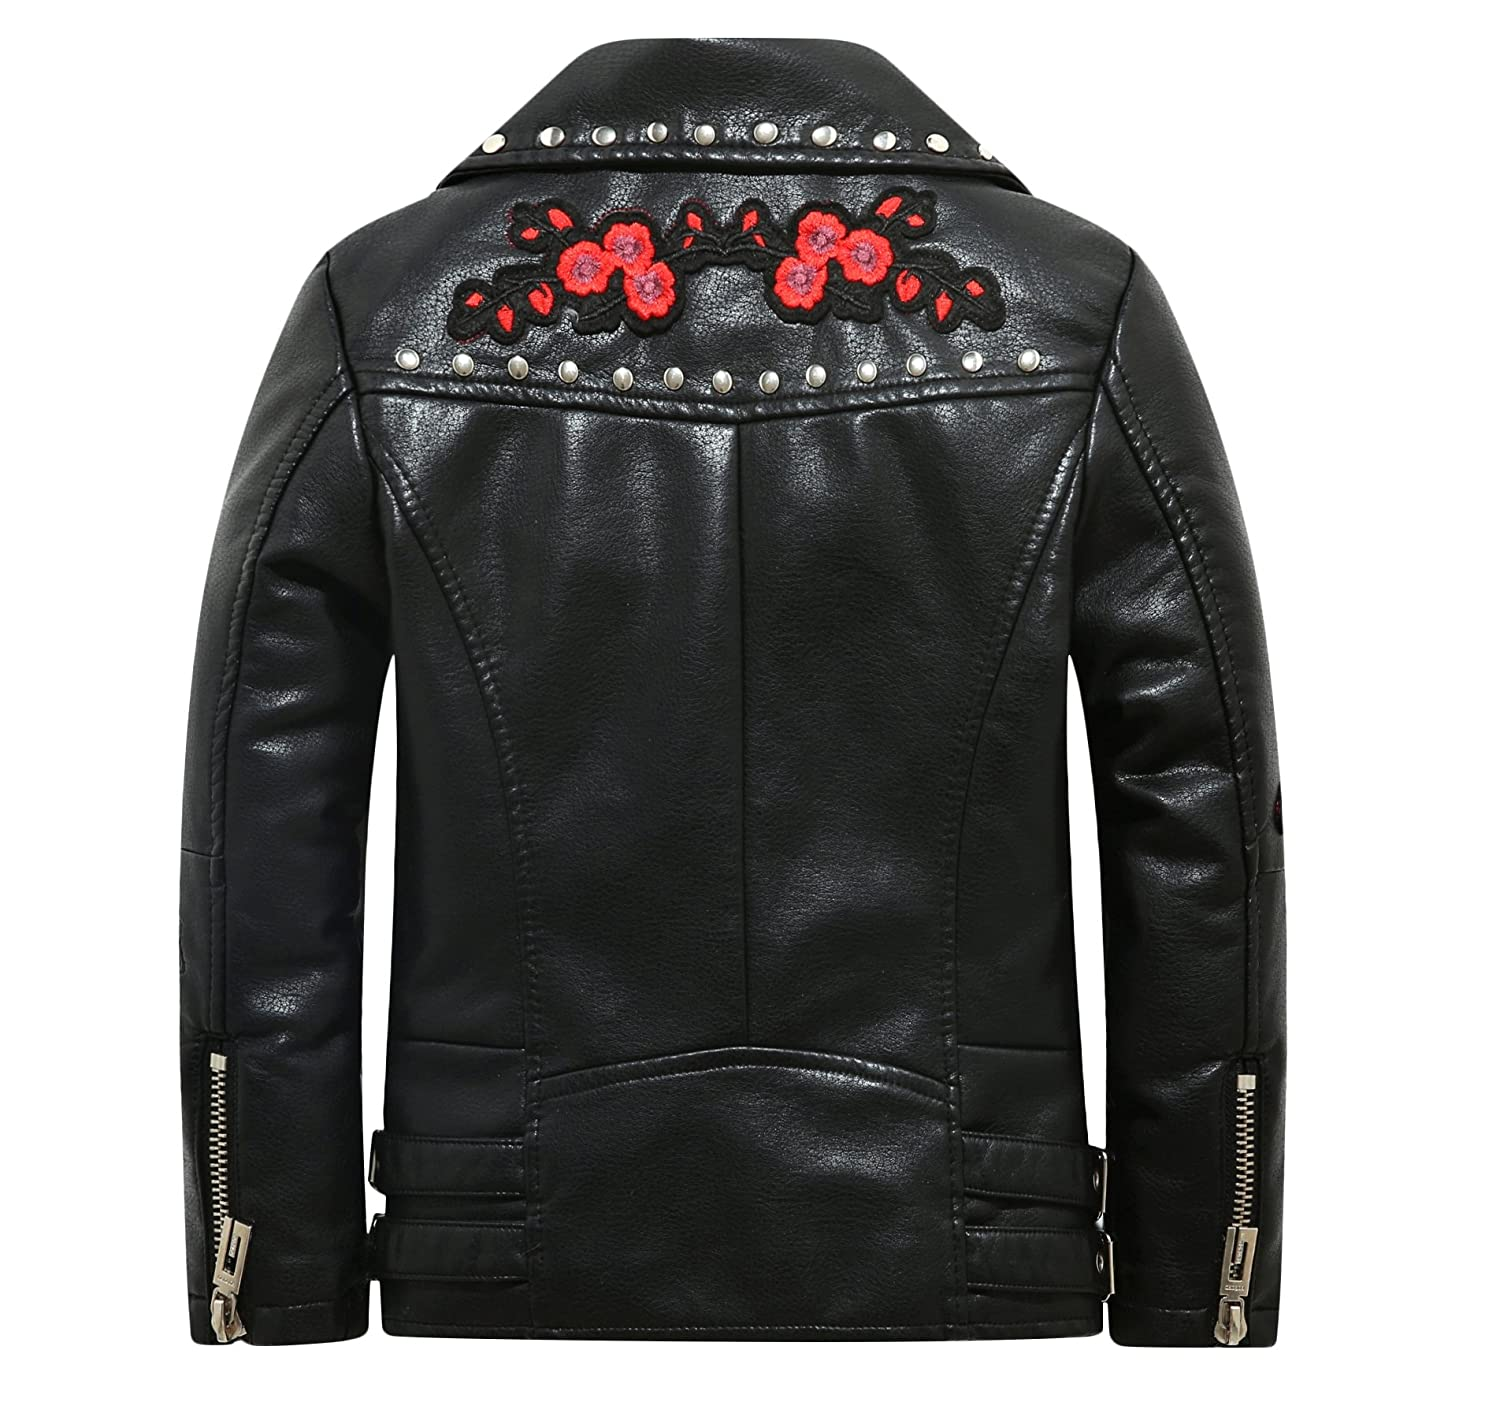 3c552bece The Twins Dream Girls Leather Jacket Kids Leather Jackets Boys Motorcycle  Jacket Girls Coat